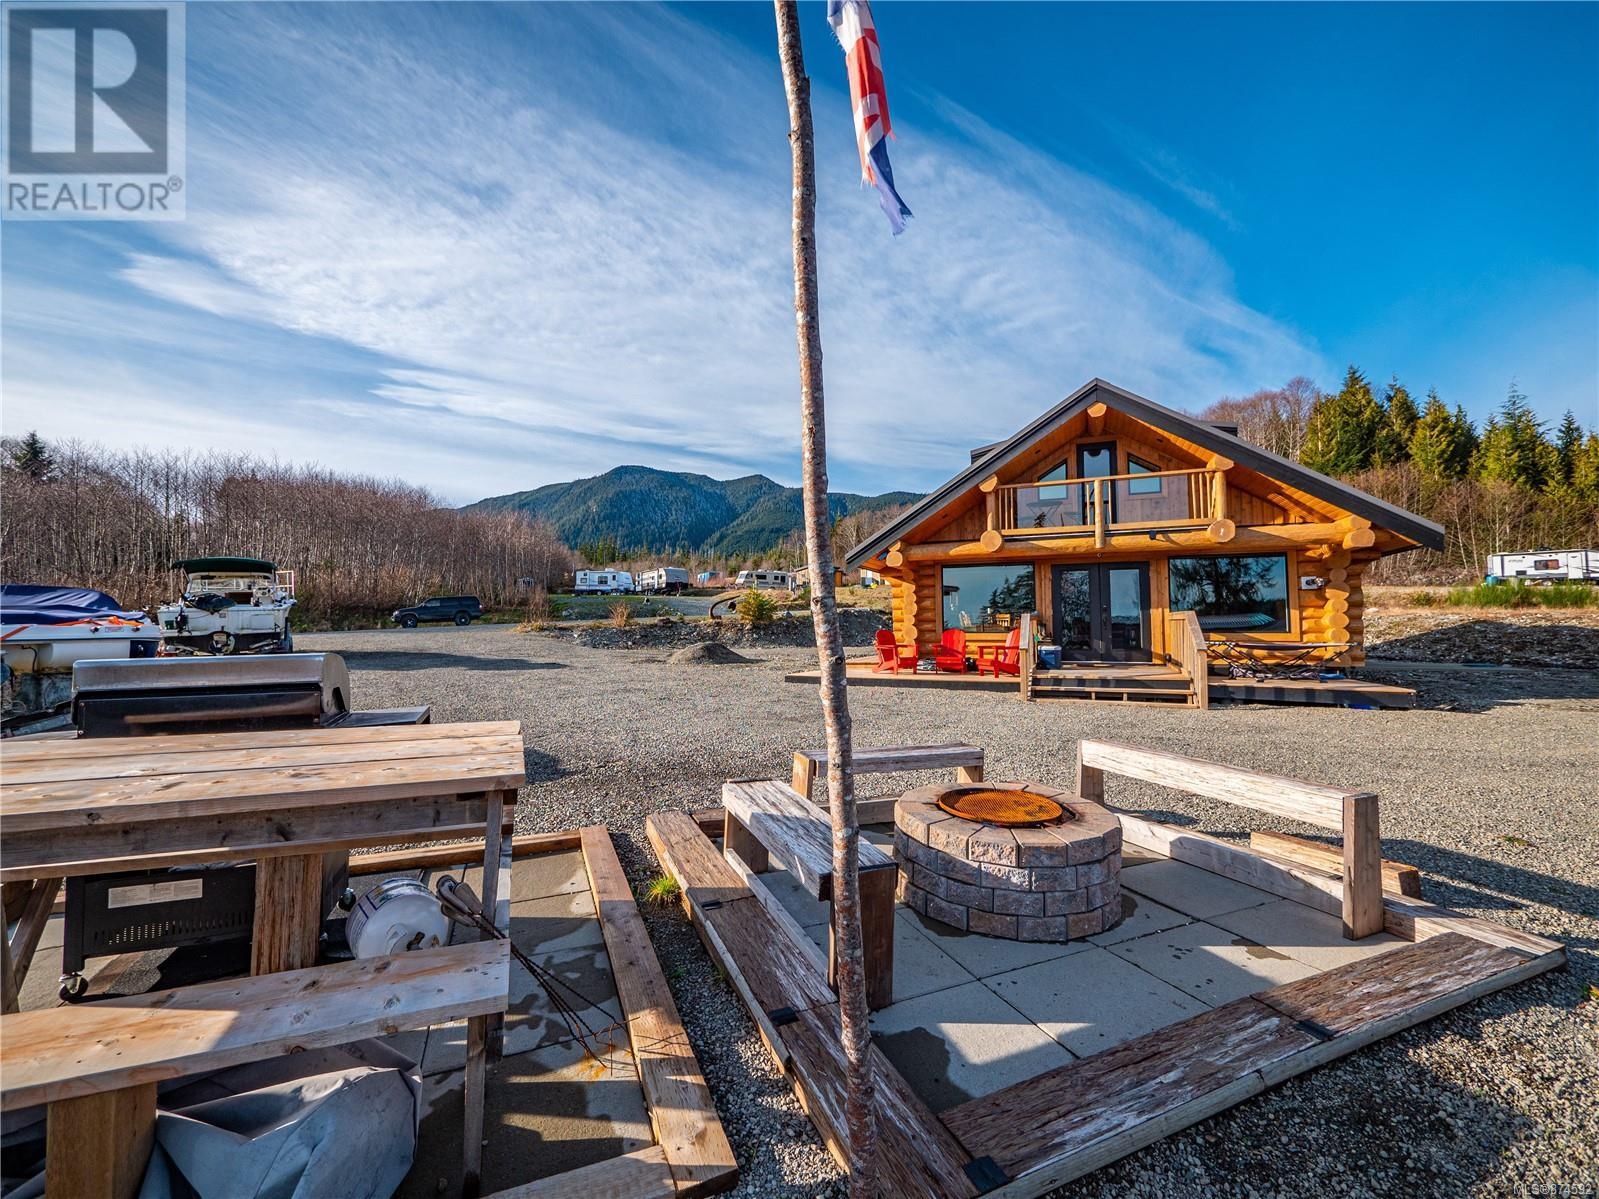 MLS® #874592 - Ucluelet House For sale Image #7